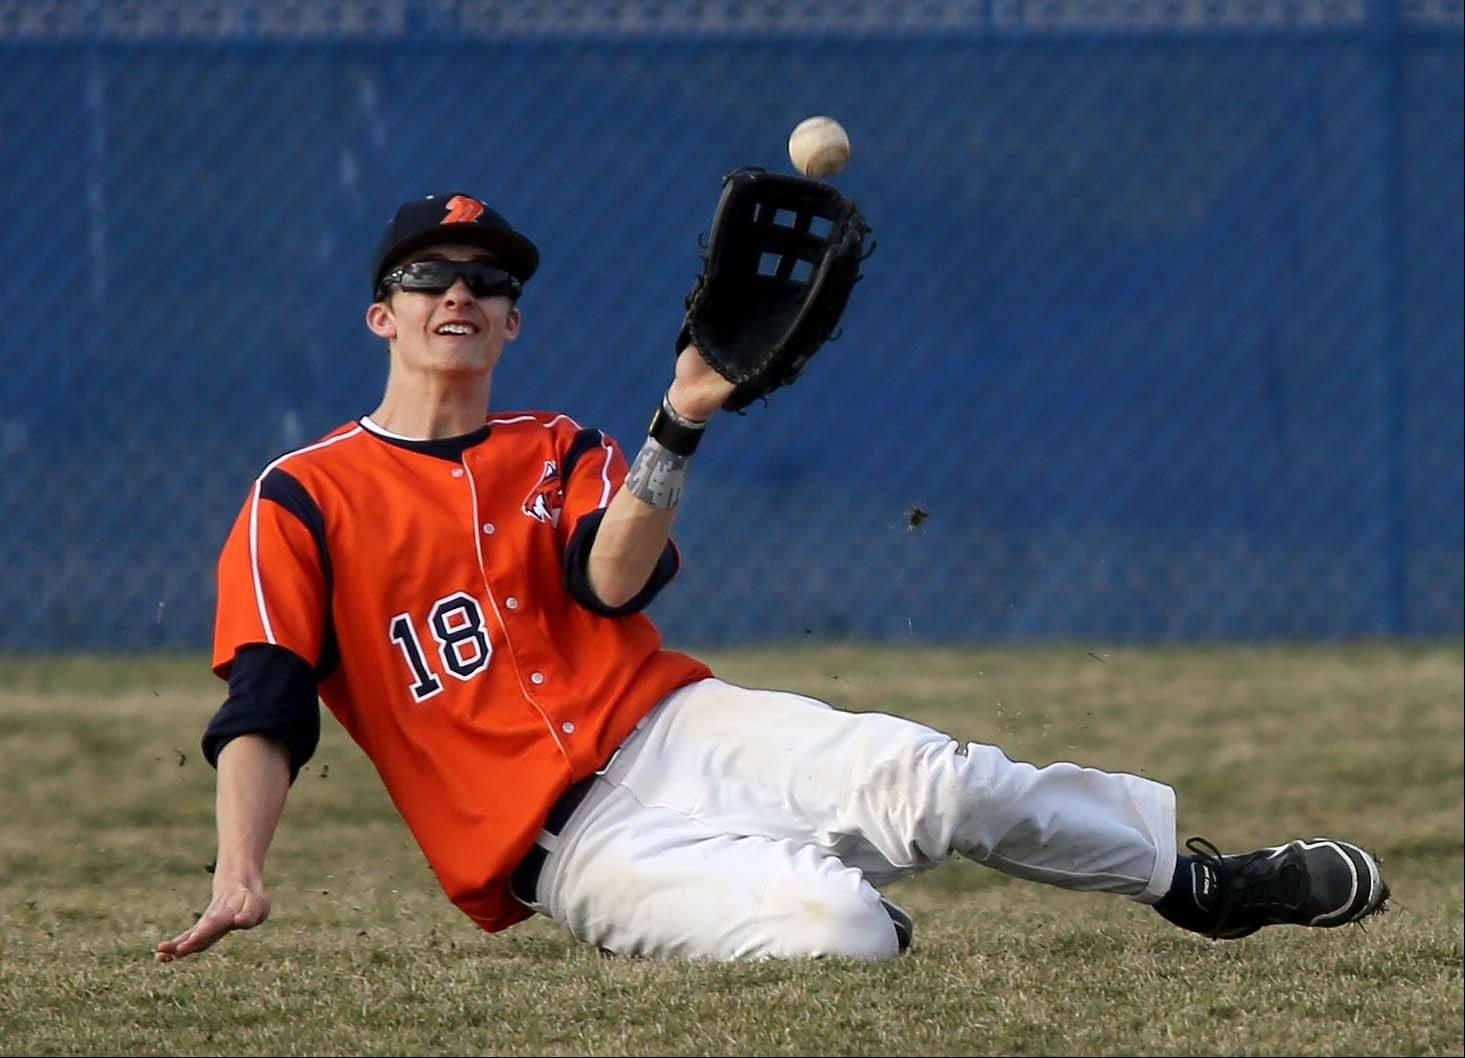 Alex Garon of Naperville North makes a sliding catch in the outfield during the third inning of baseball against Wheaton North on Monday in Naperville.